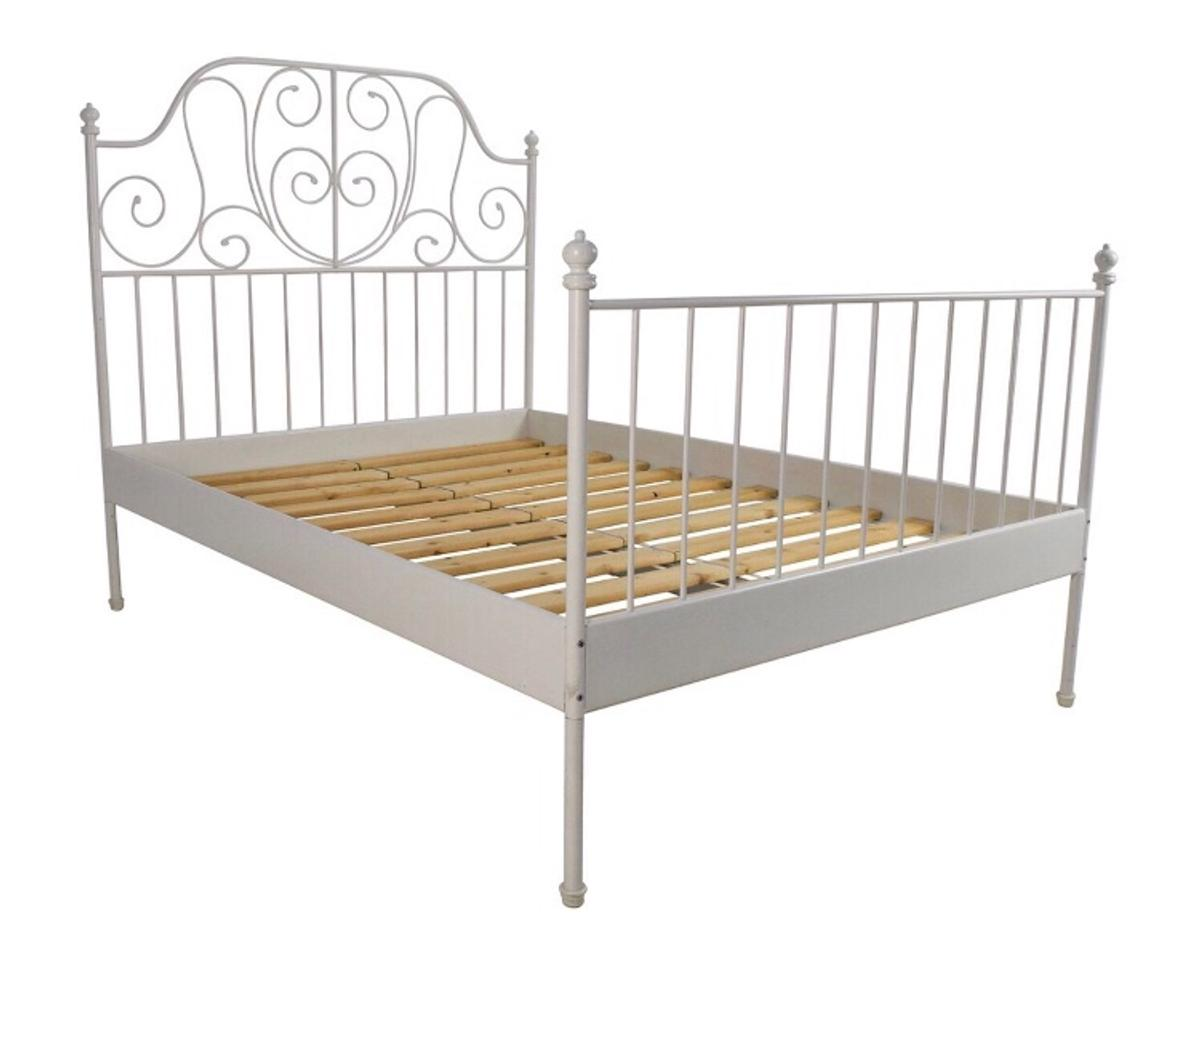 Ikea Leirvik White Metal Double Bed Frame In South Staffordshire For 30 00 For Sale Shpock